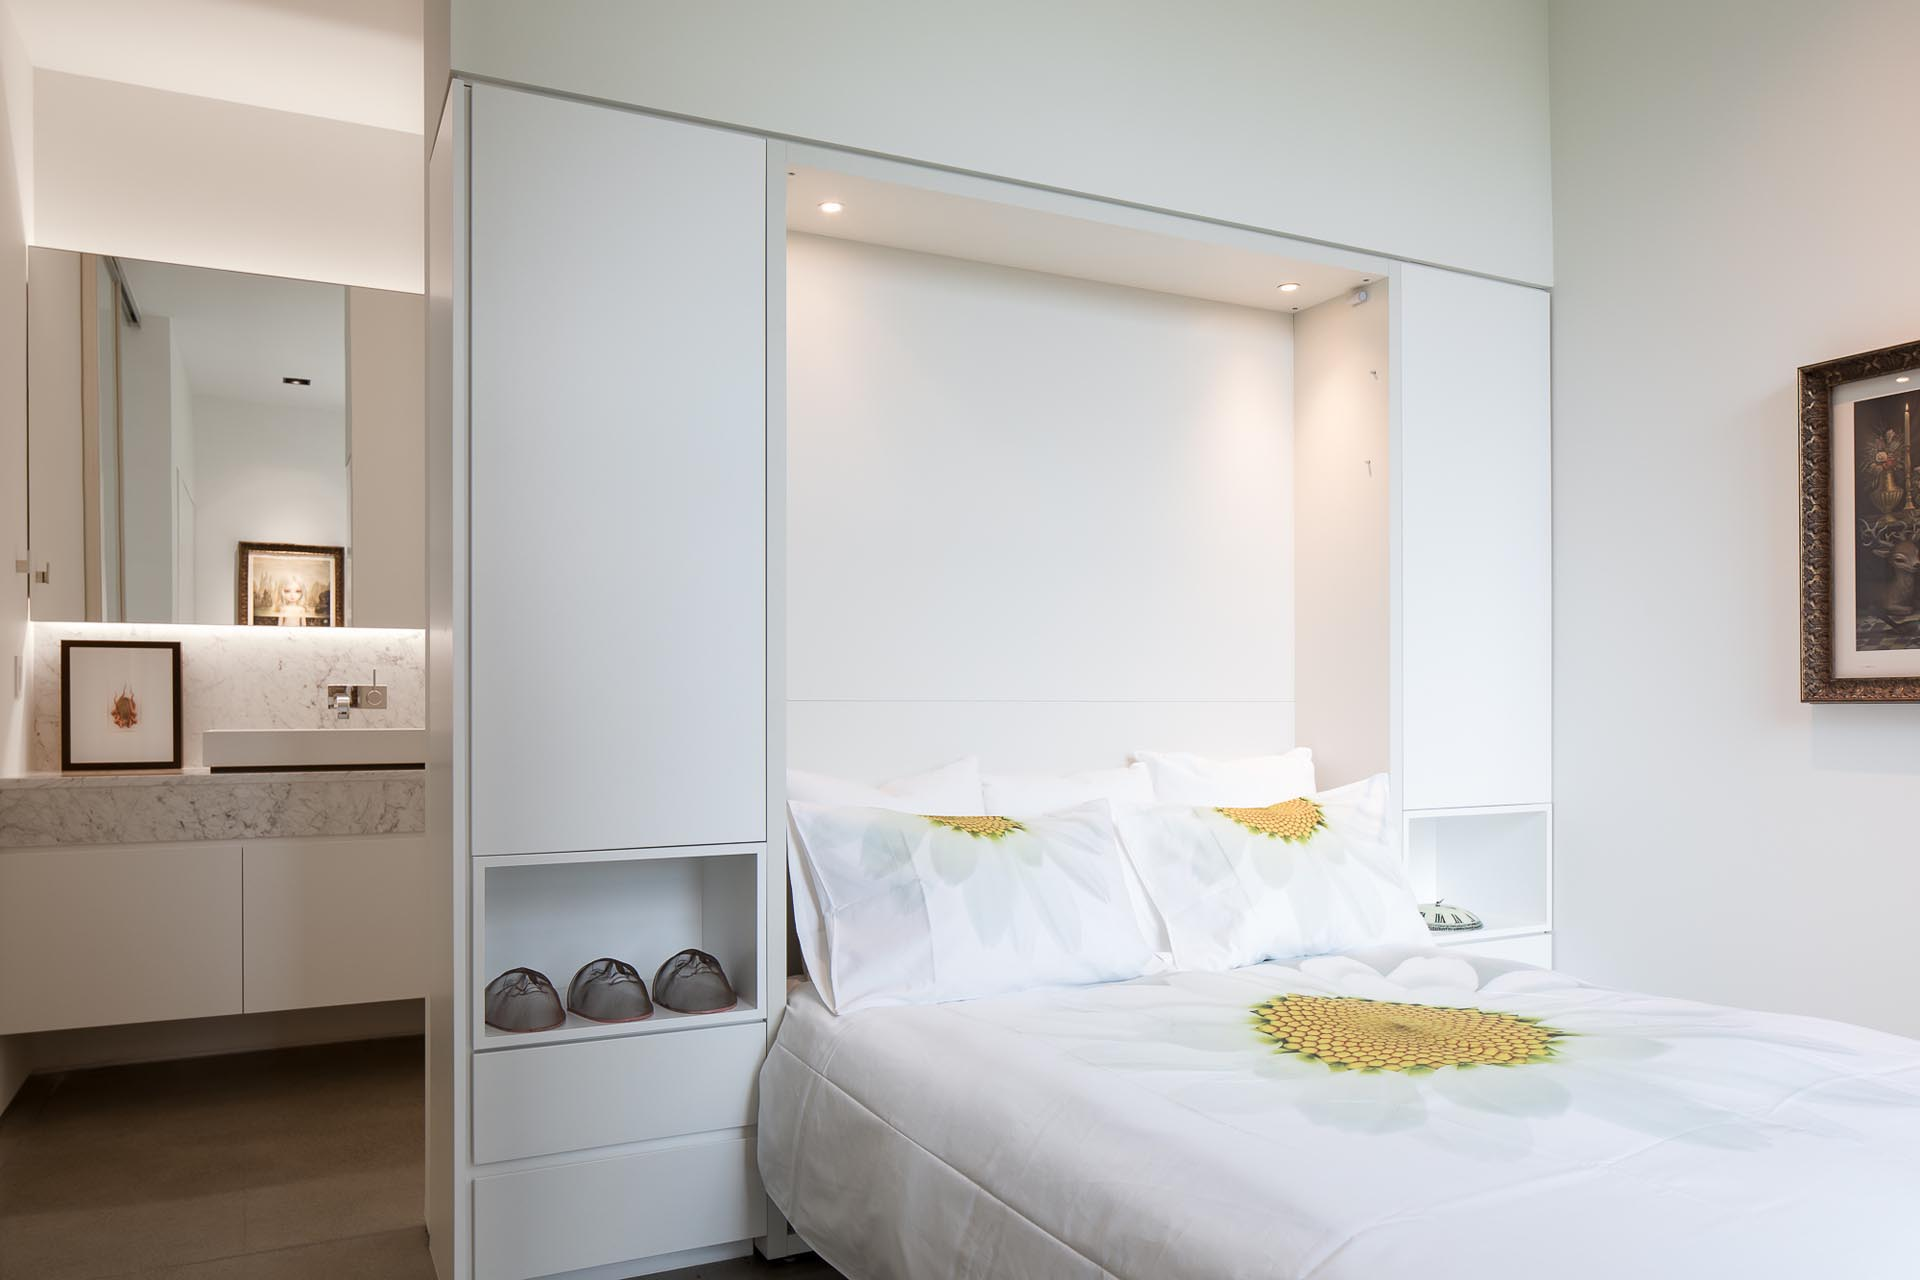 In this modern white bedroom, custom cabinetry surrounds the headboard of the bed, and separates the sleeping area from the en-suite bathroom.